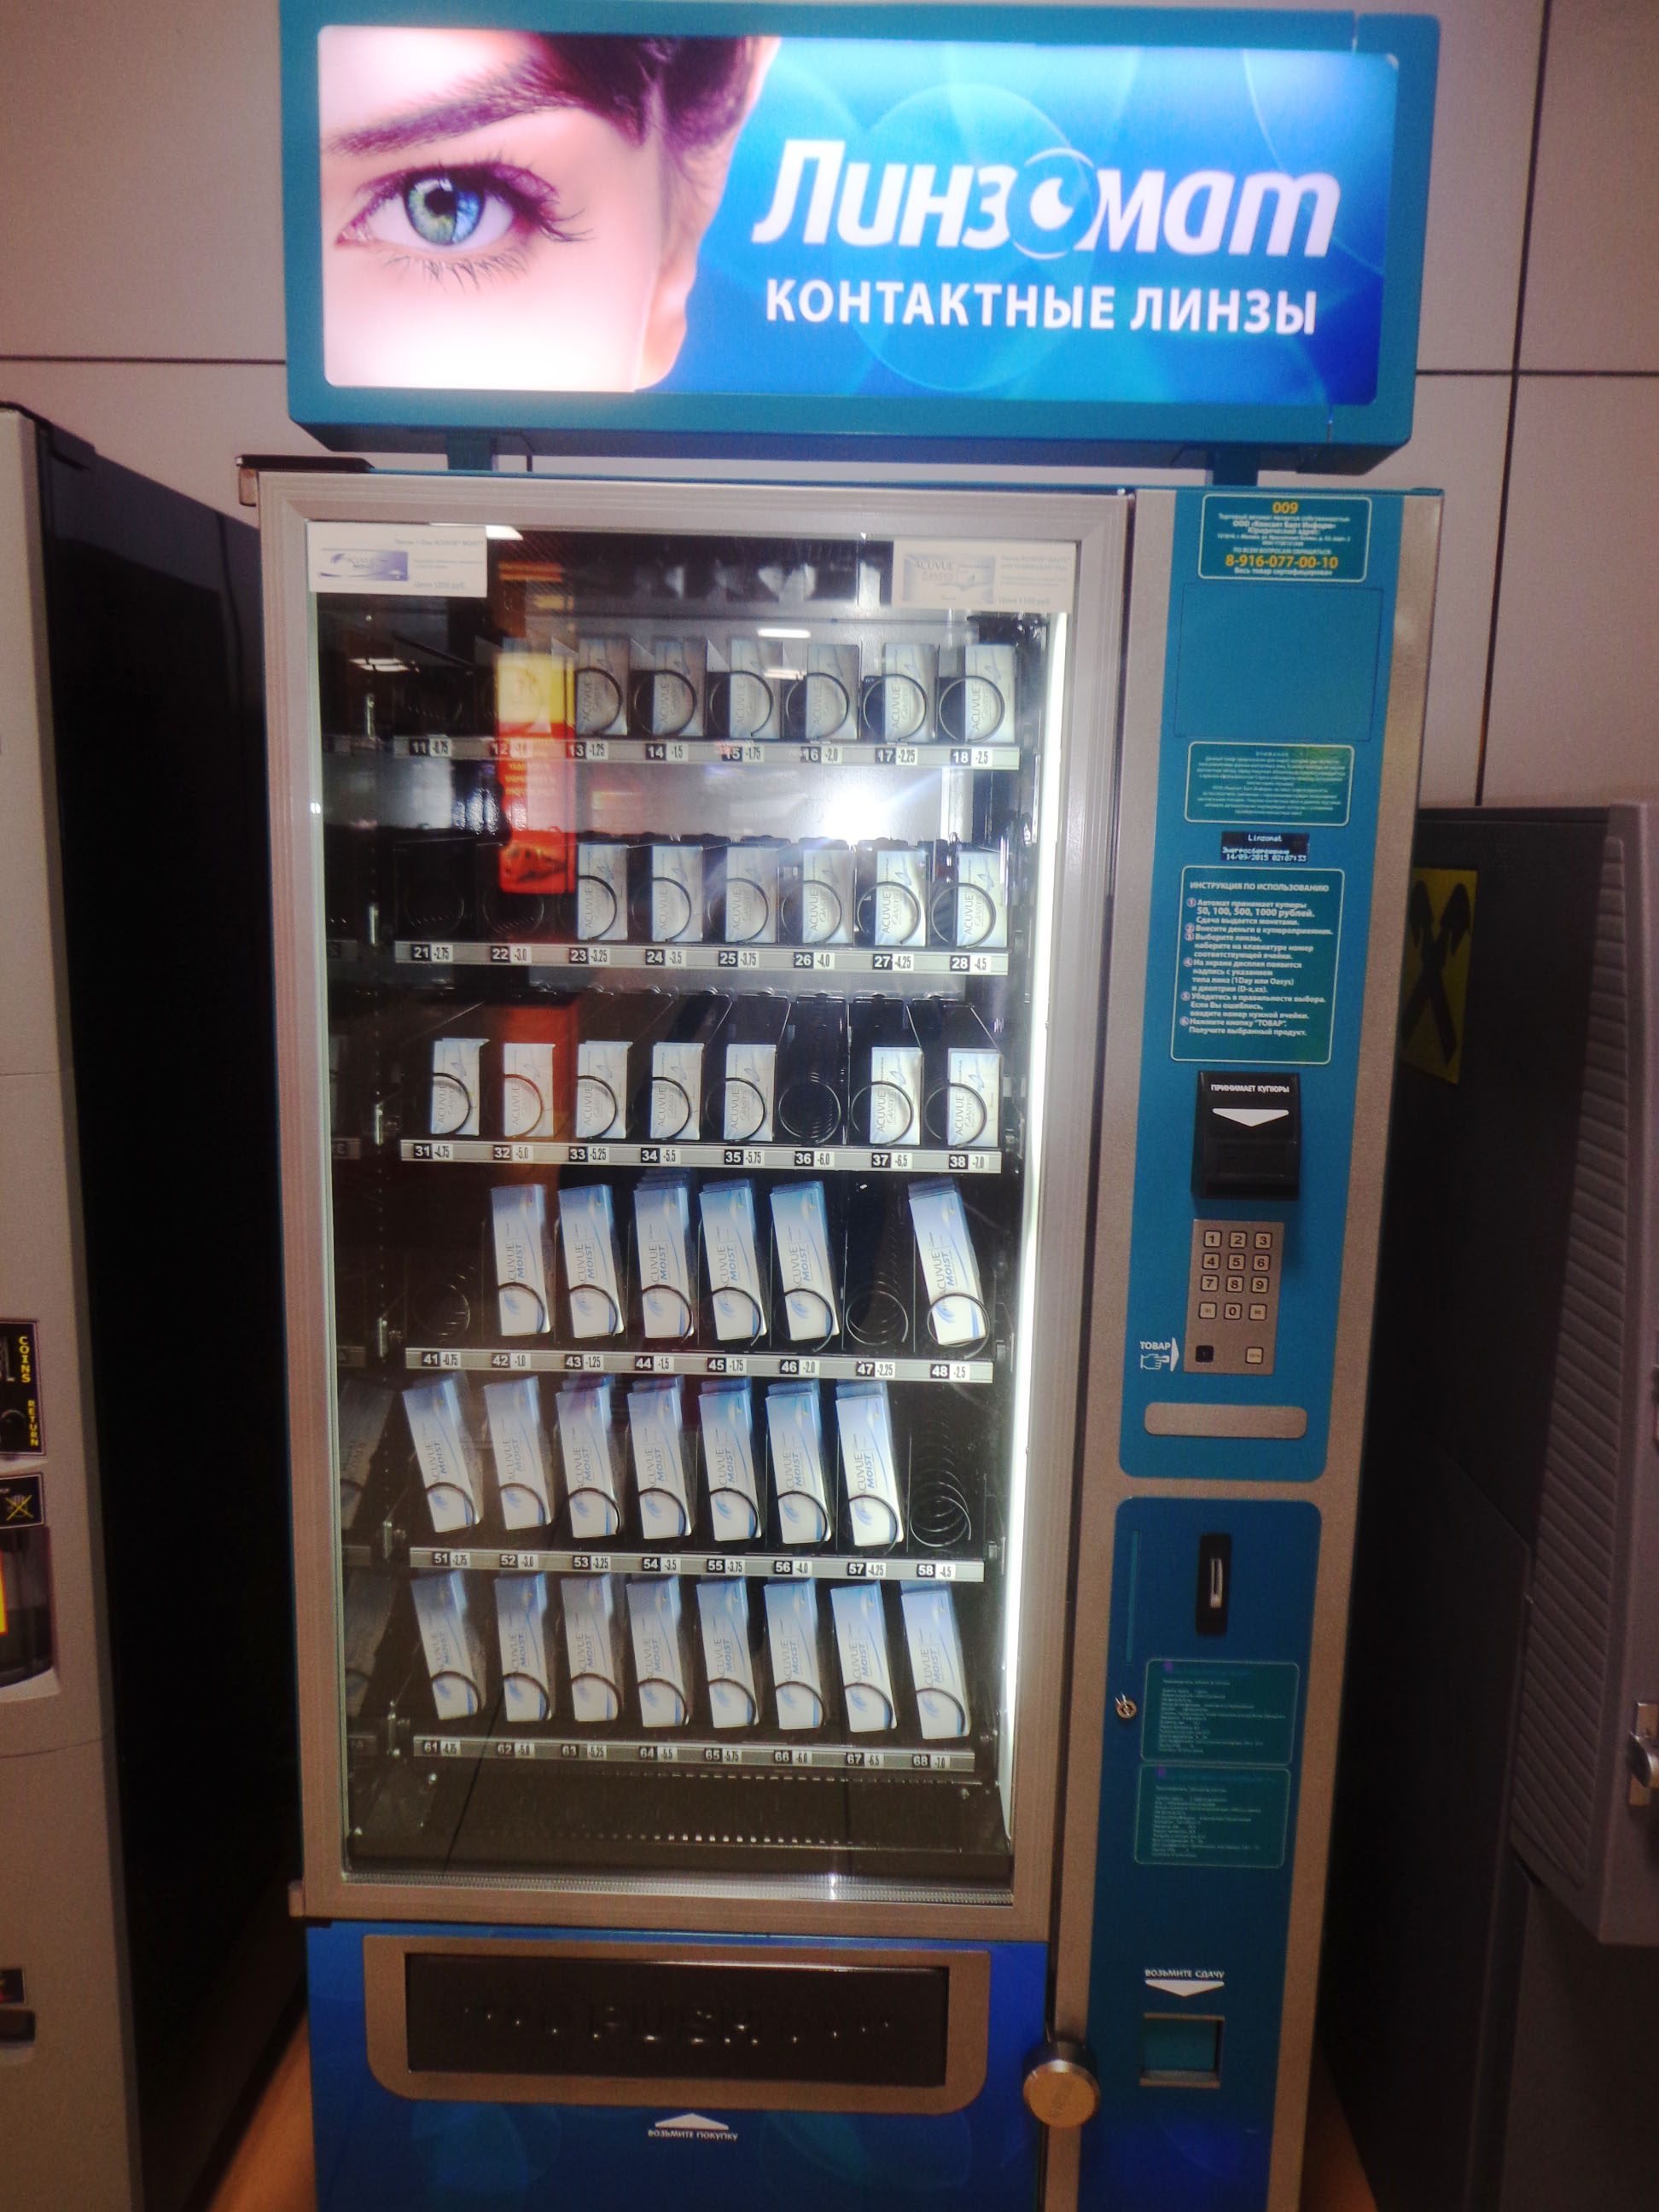 Moscow, Russia - Contact Lense Vending Machine